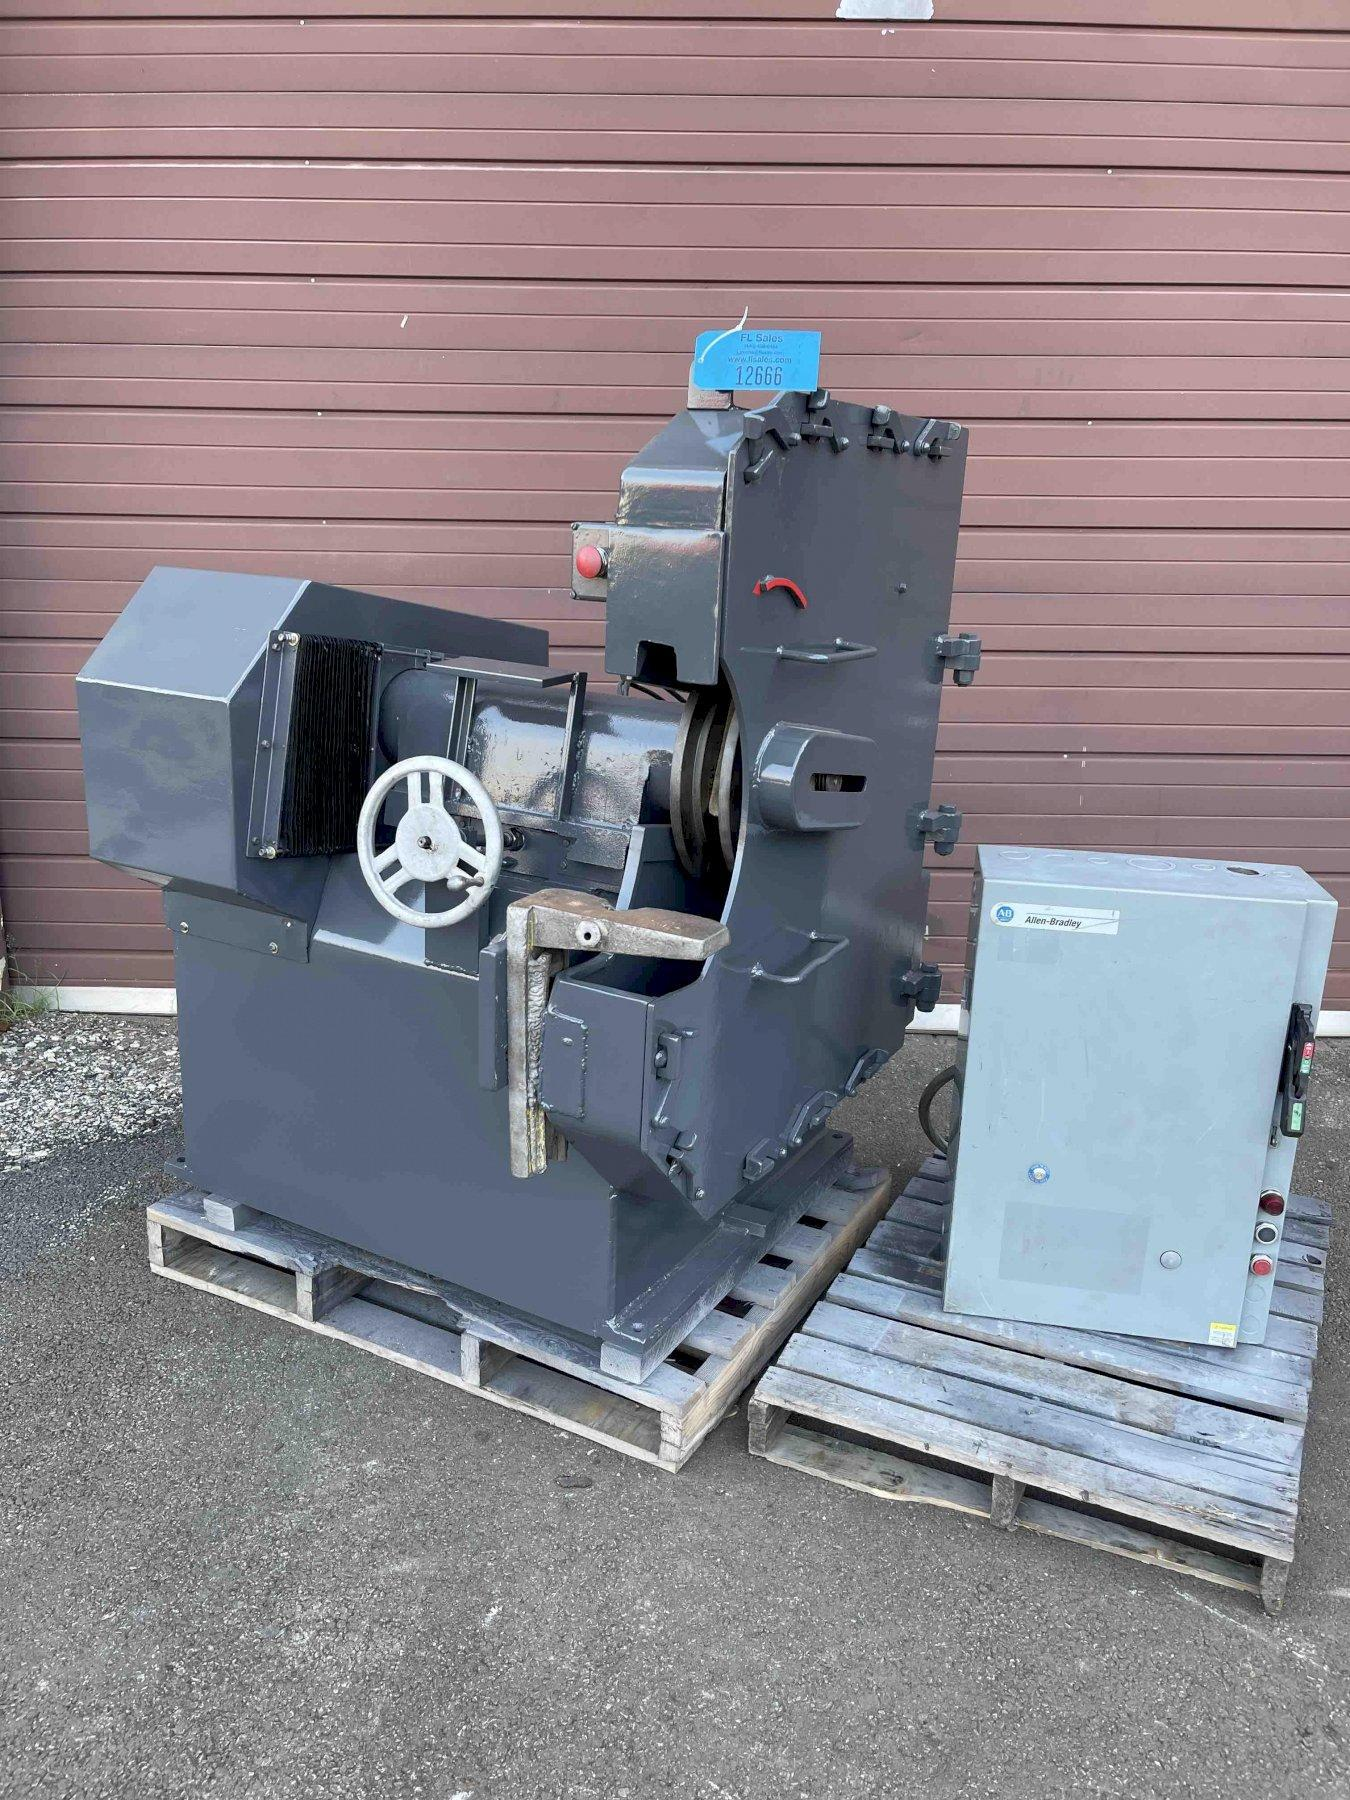 SETCO 922-525 MODEL 300 SINGLE END RIGHT HAND SNAG GRINDER WITH 25 HP MOTOR, STARTER  being offered reconditioned